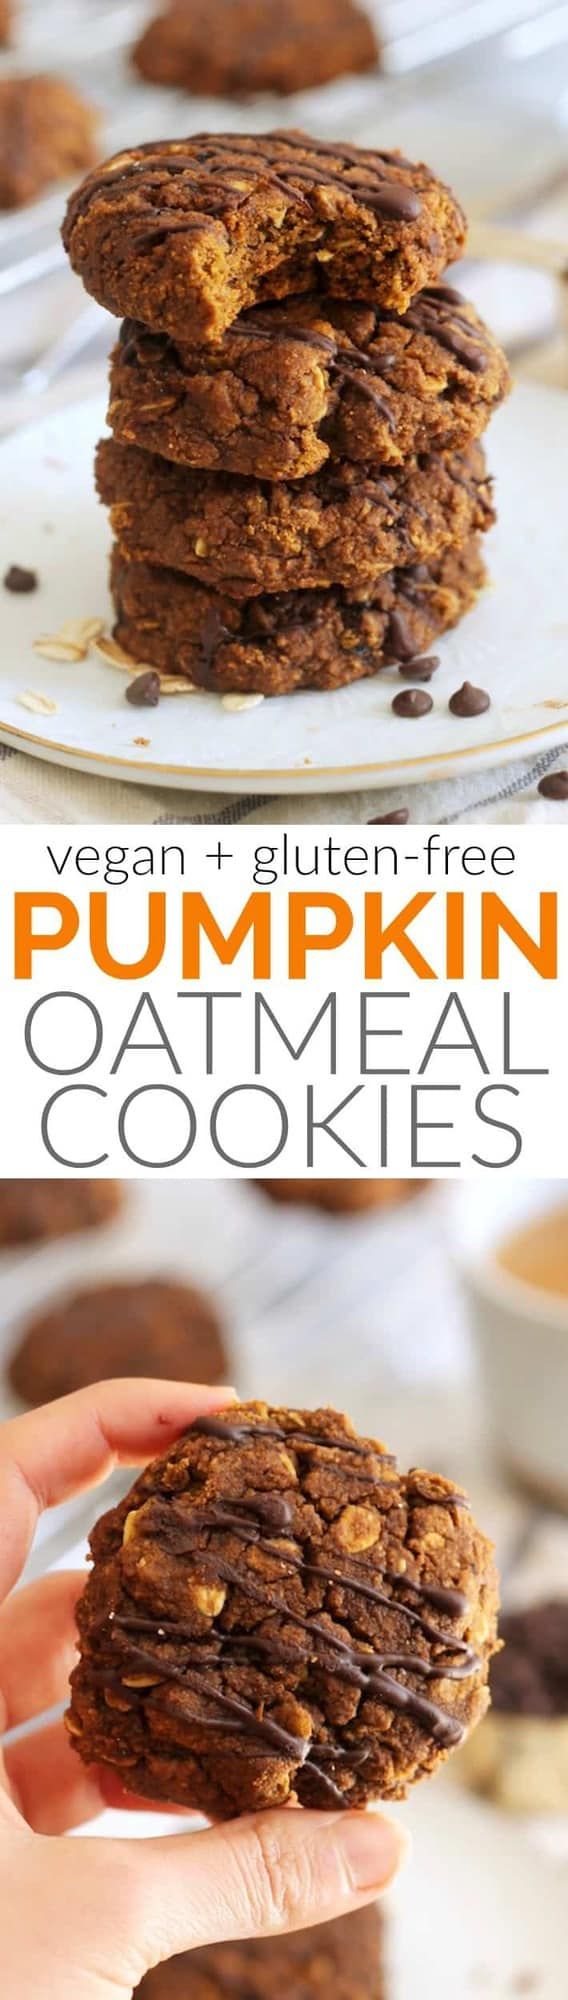 These Soft Pumpkin Spice Oatmeal Cookies make the perfect healthy treat! Packed with whole grains and pumpkin, they're a nutritious way to satisfy any sweet tooth. Vegan and gluten-free.